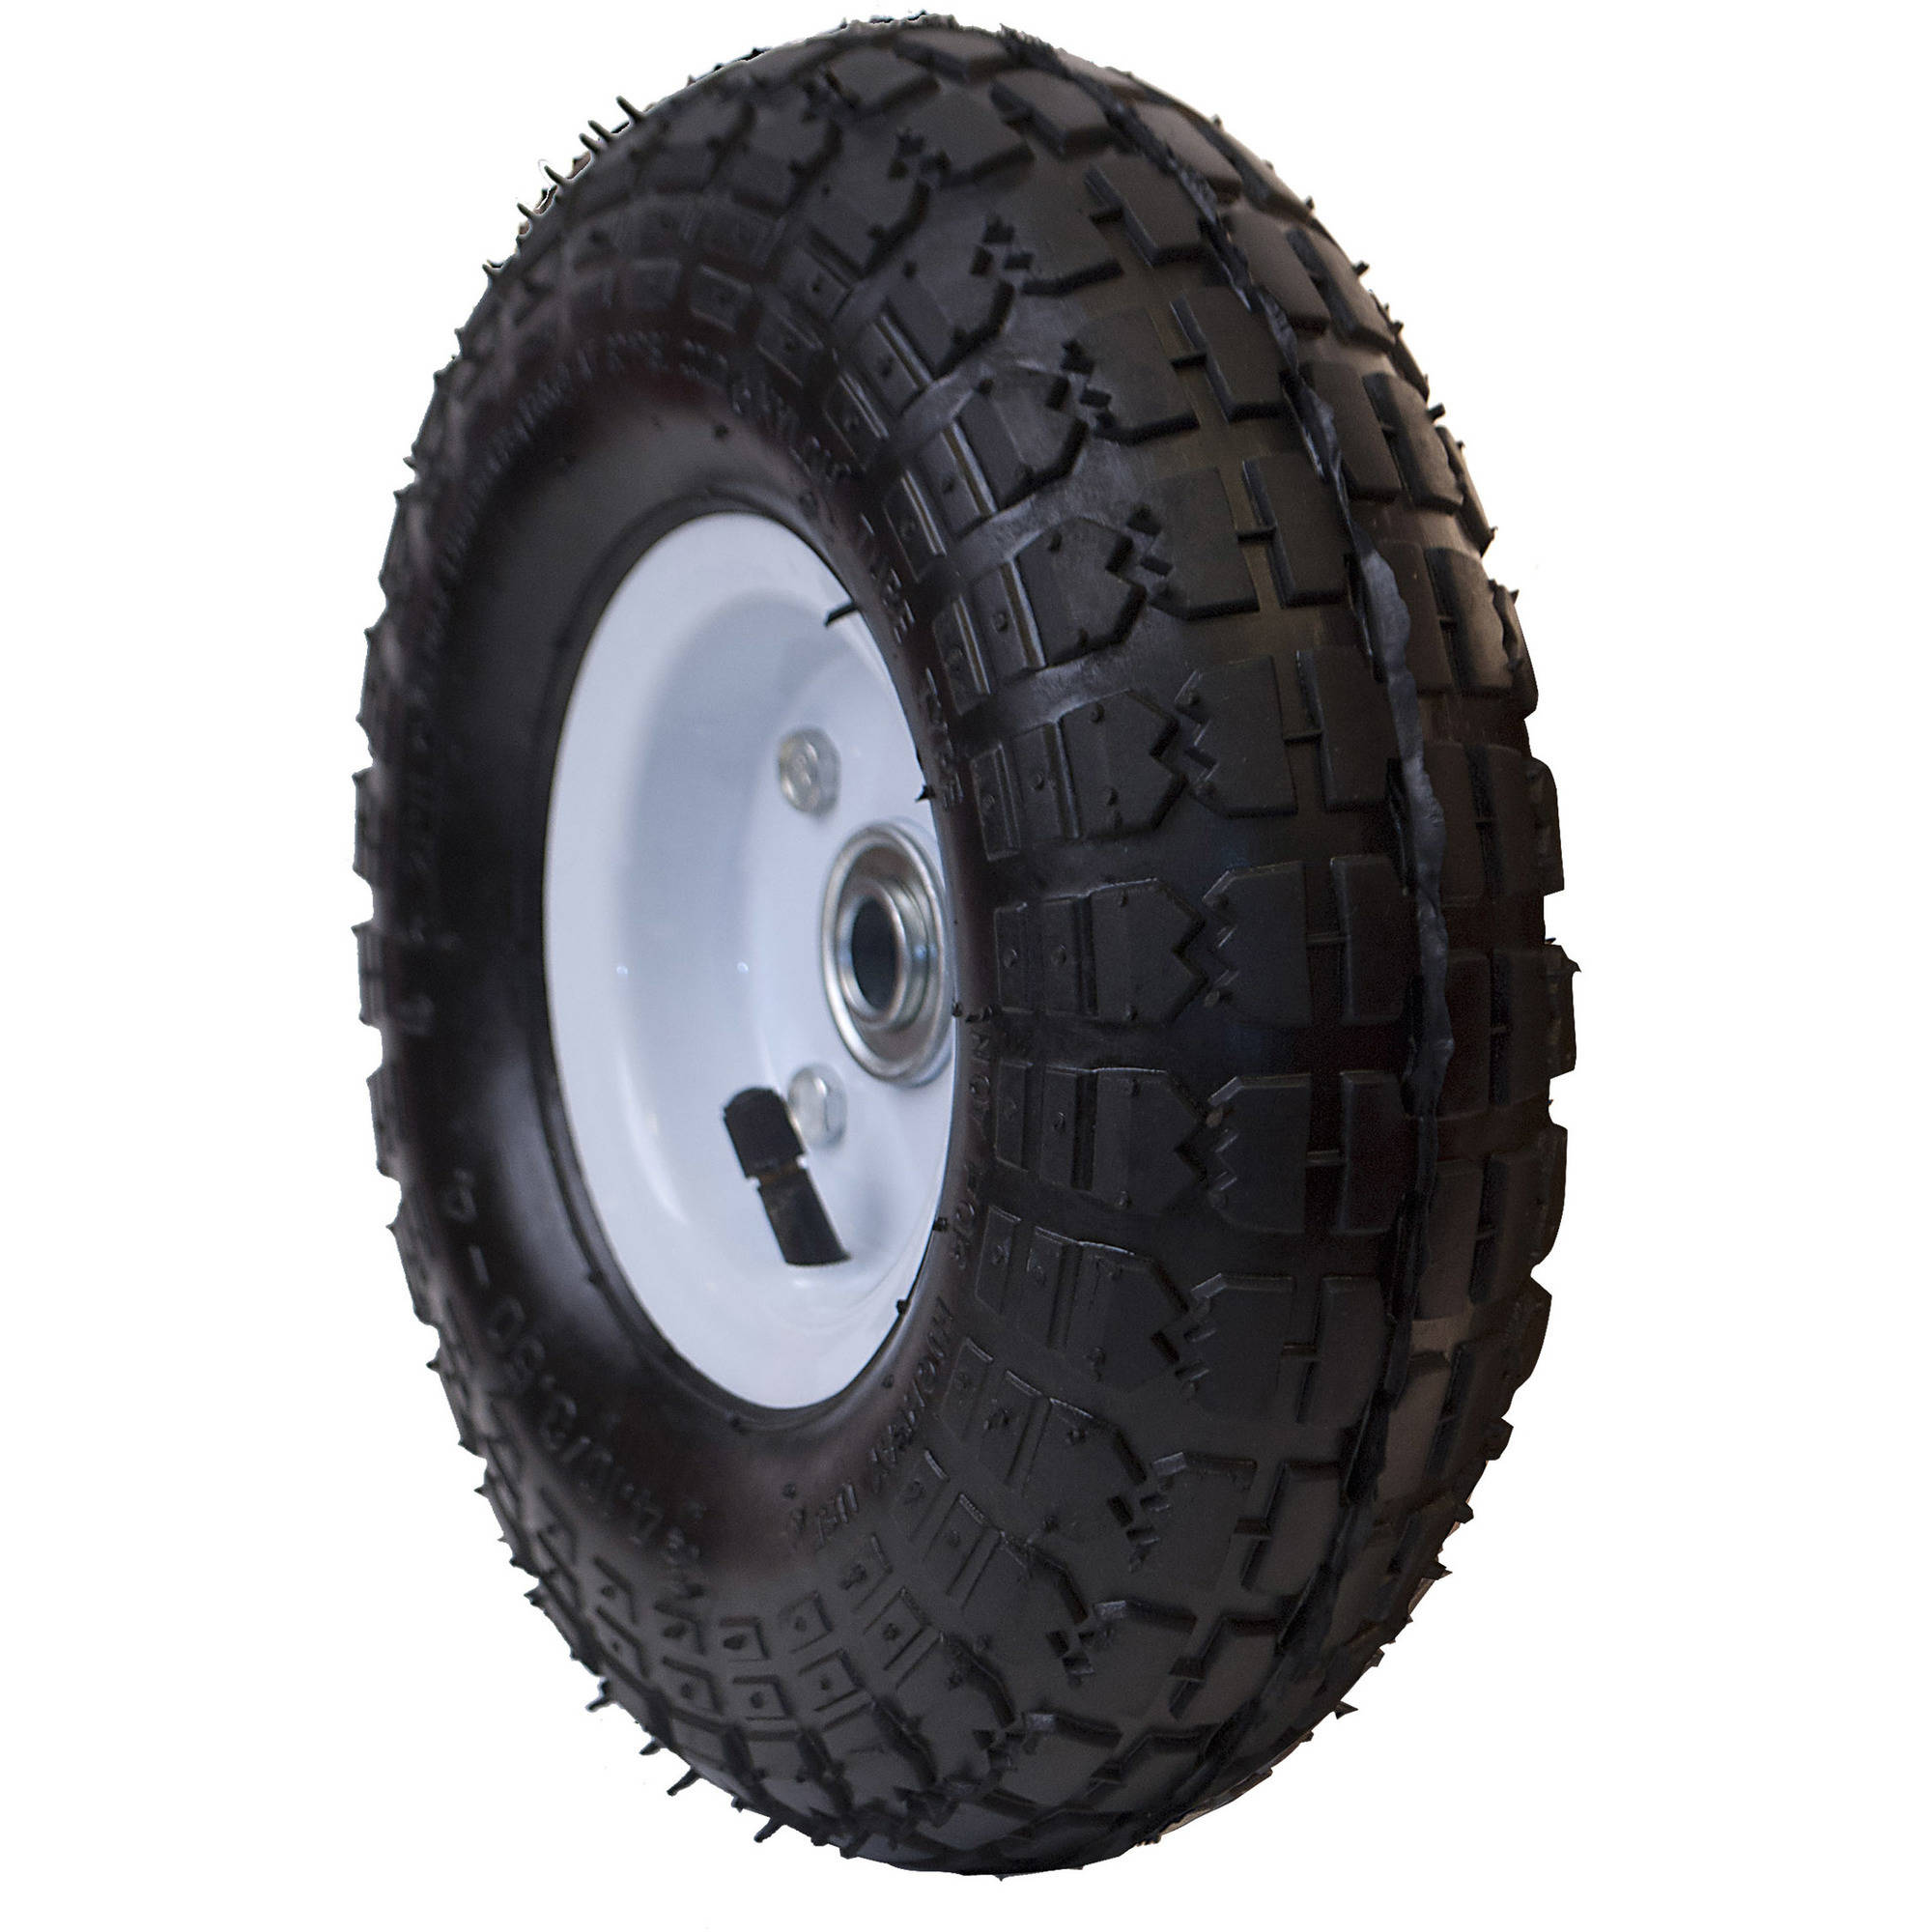 ALEKO WAP10 Pneumatic Replacement Wheel 10 In Air Filled Turf Tire for Hand Trucks Lawn Carts, Black Tire, White Rim